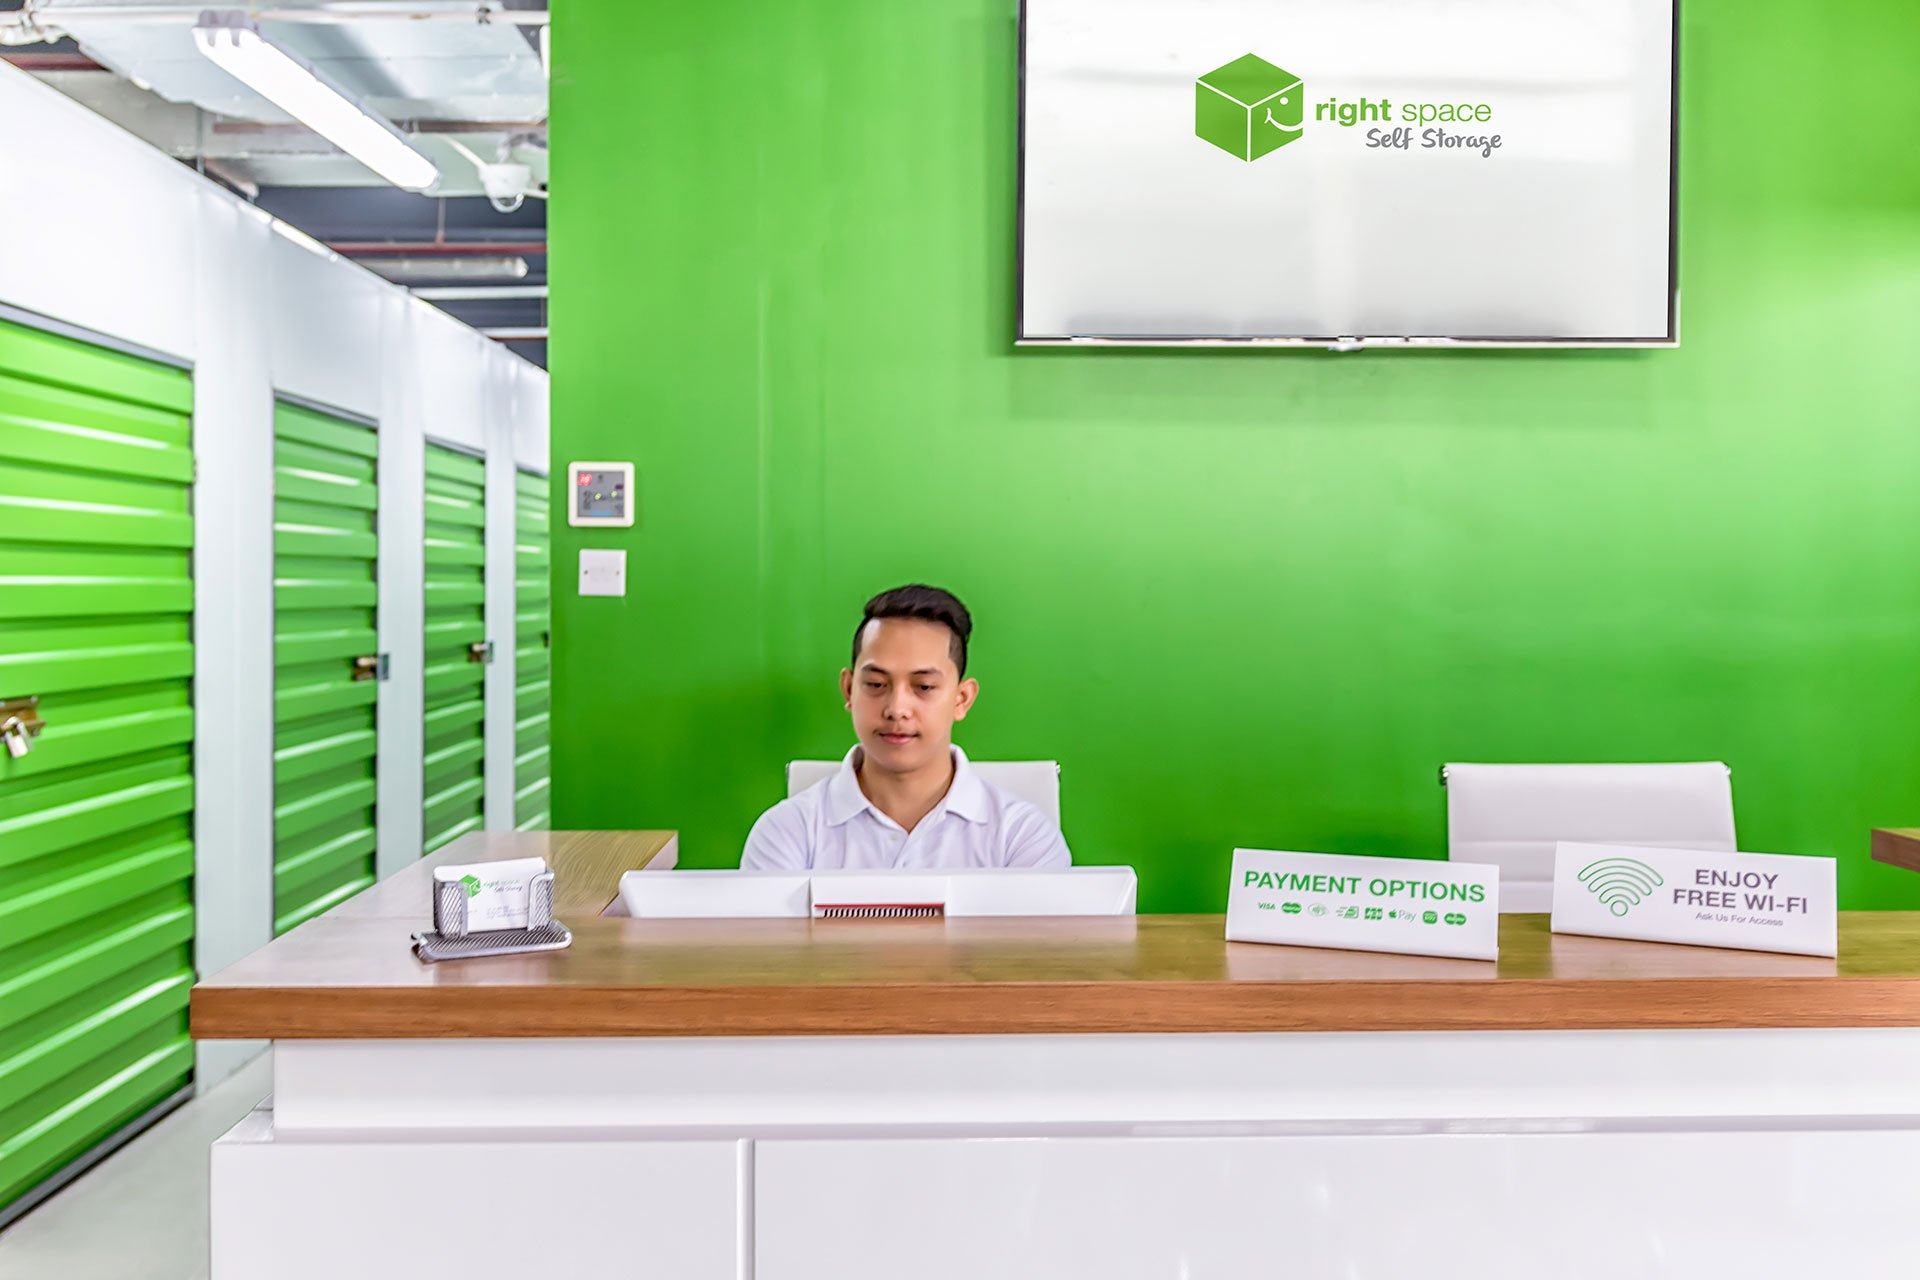 green-environmental-friendly-right-space-self-storage